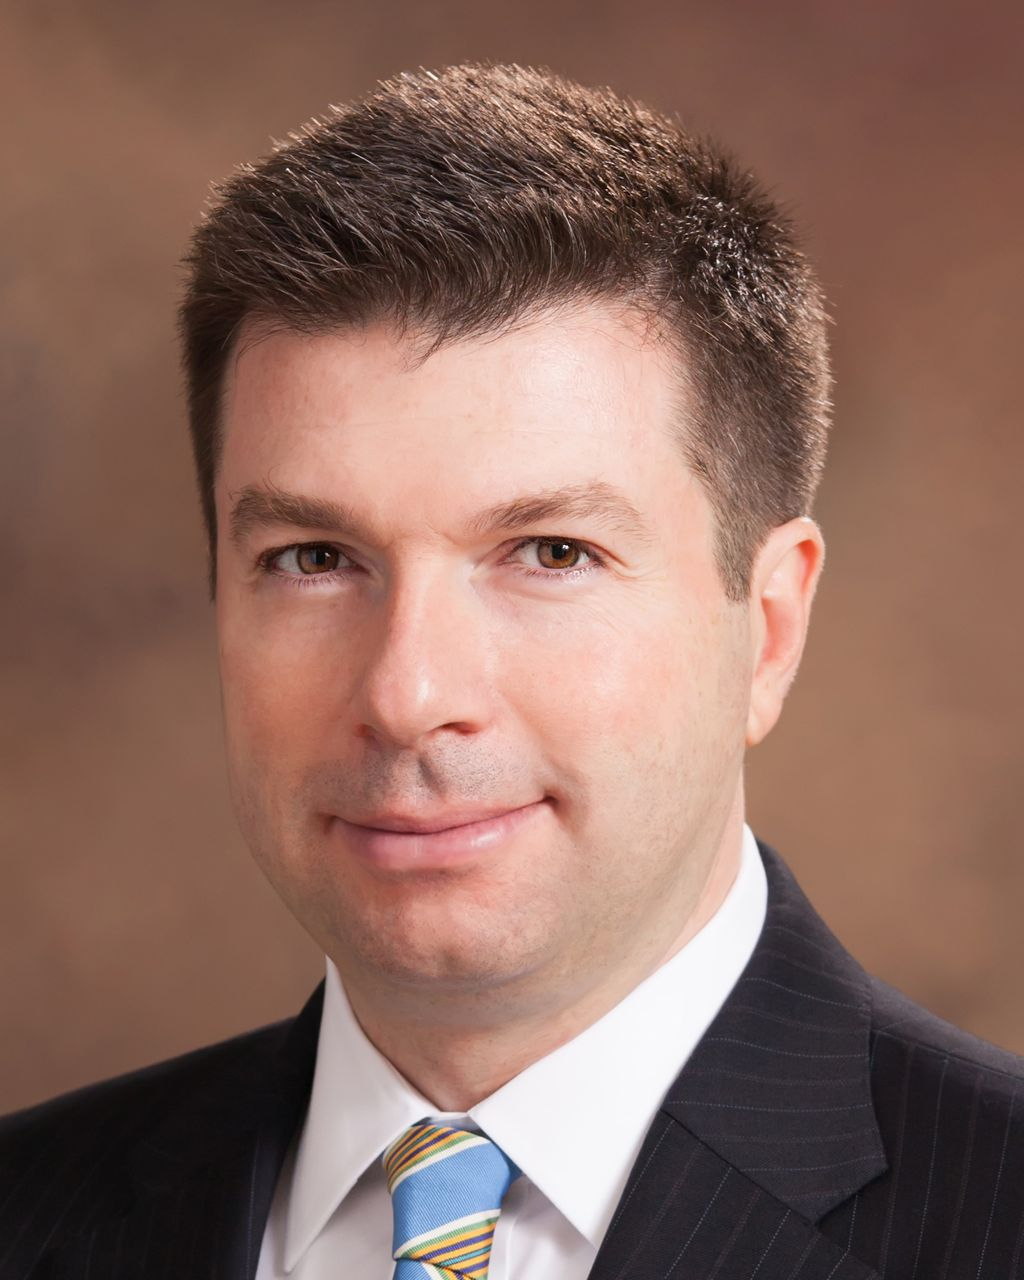 Patrick Cote, financial advisor Mansfield MA